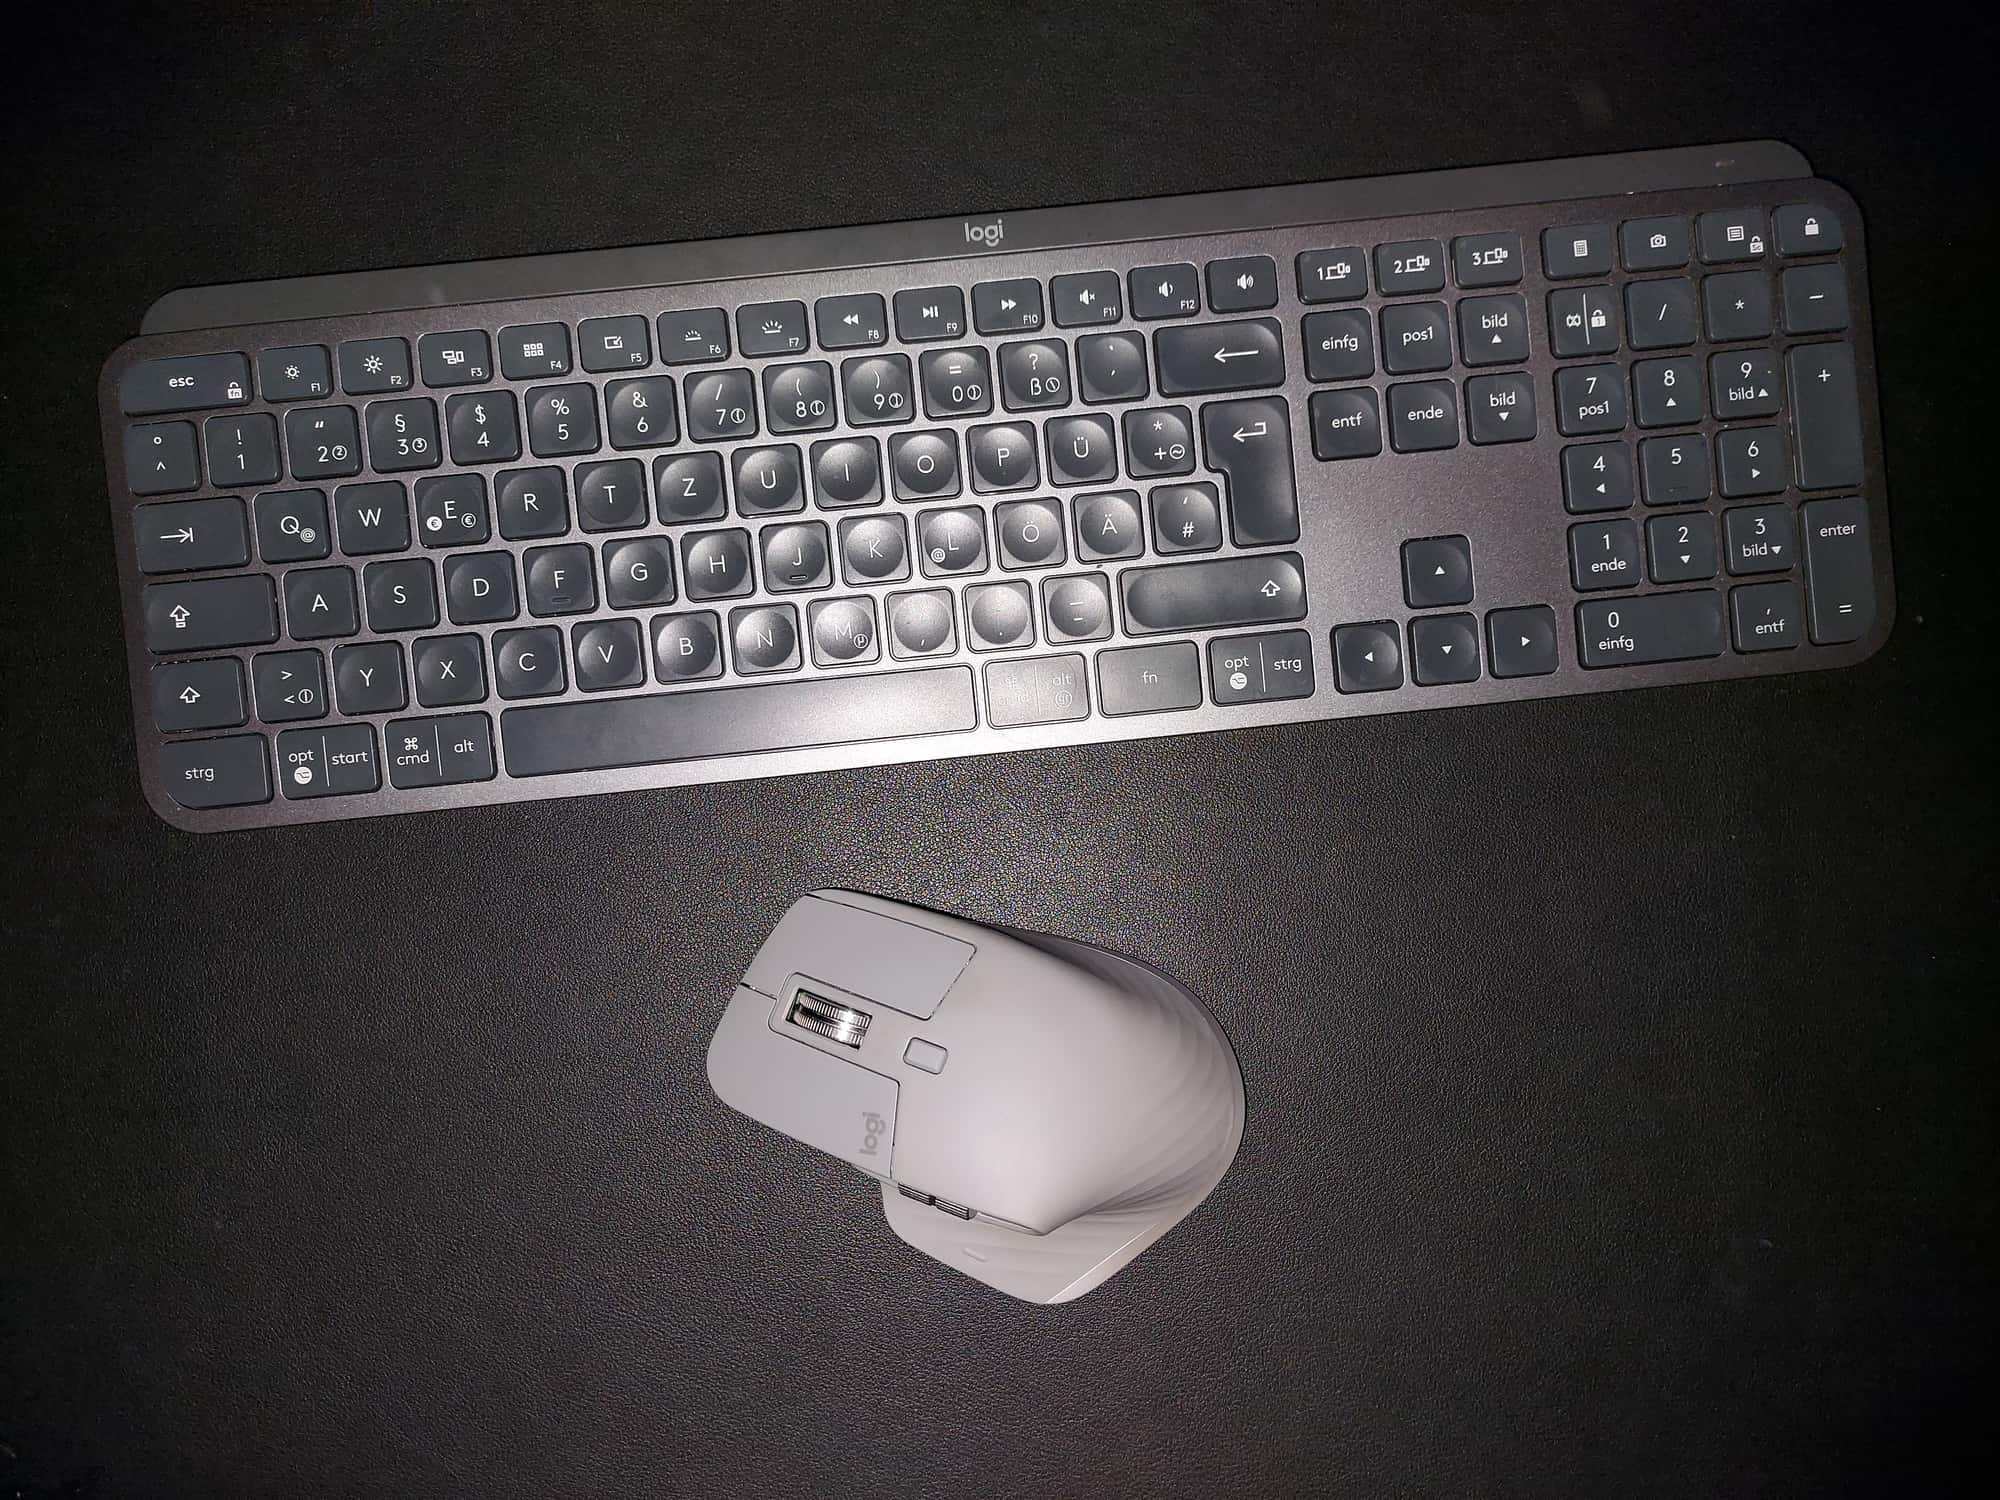 The Logitech MX Keys and MX Master 3